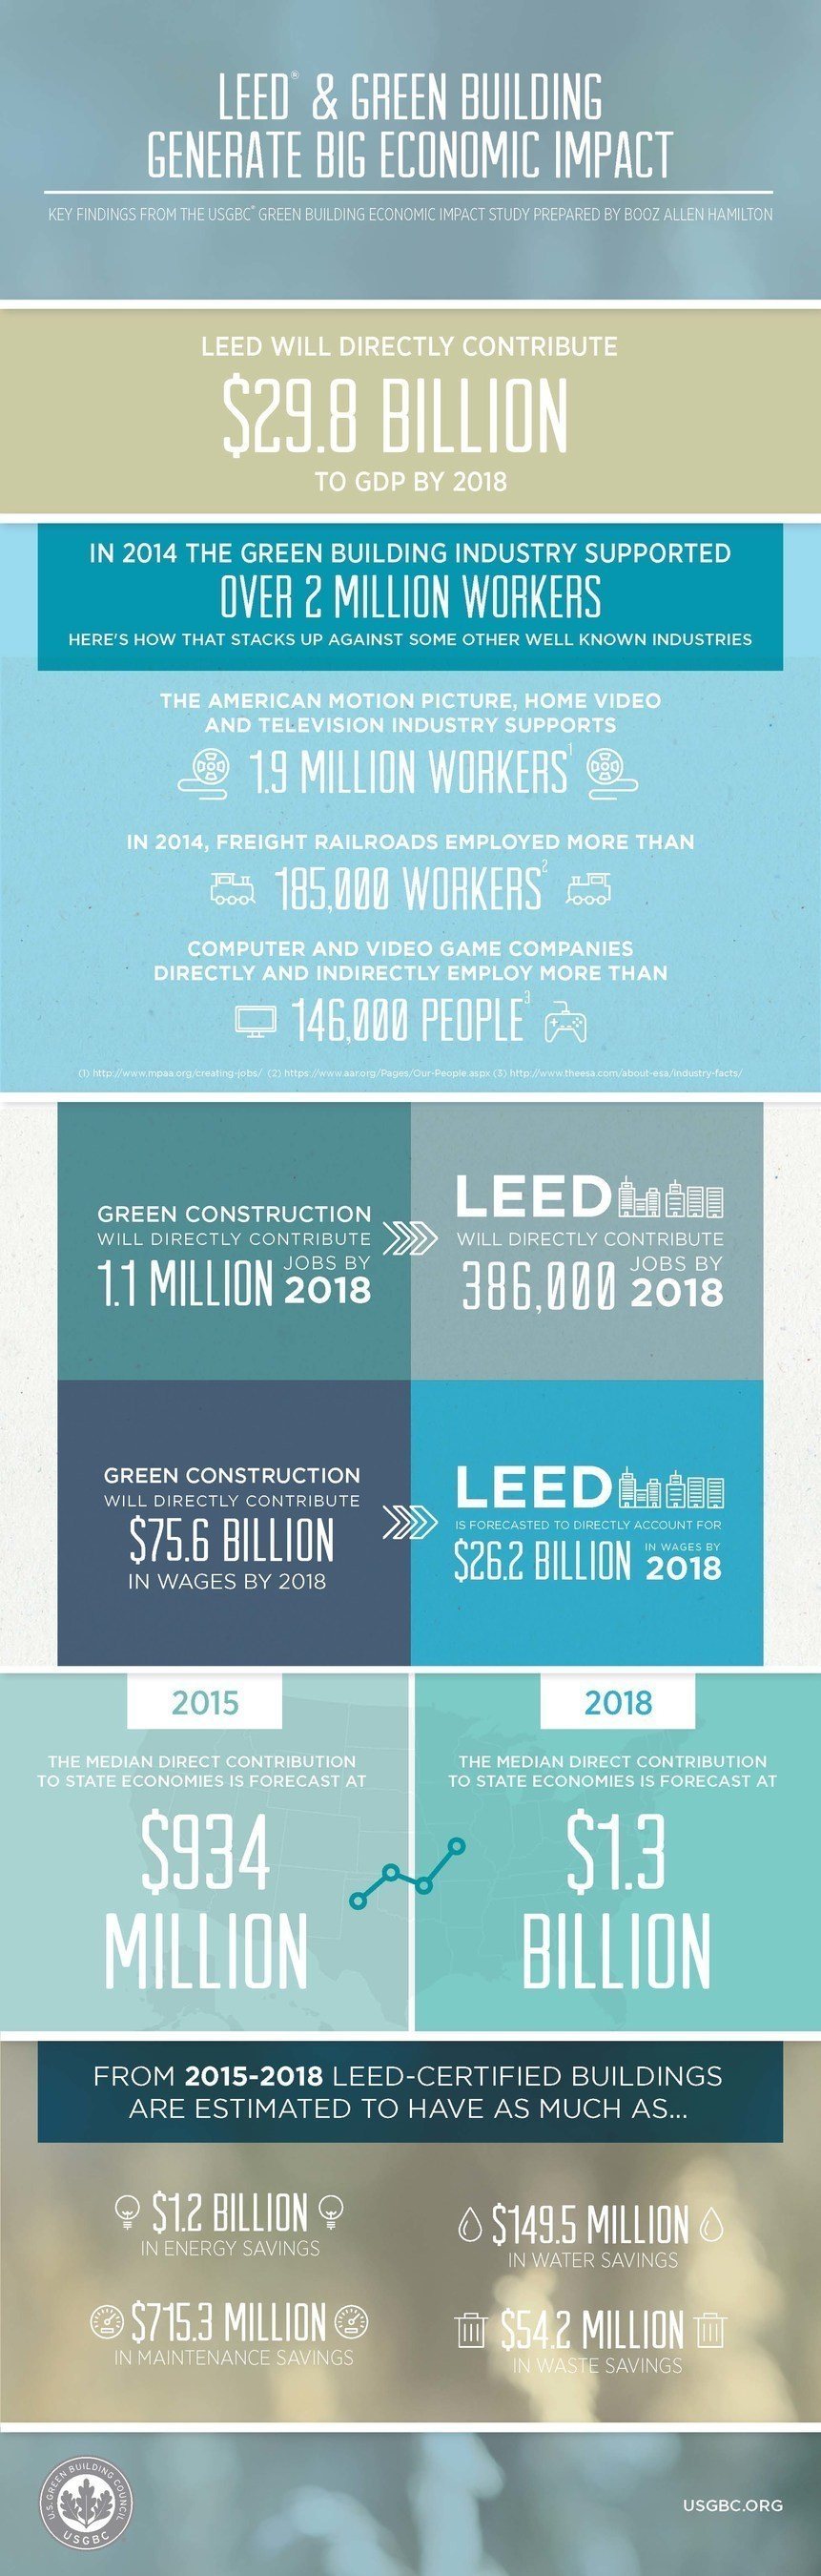 Green Construction Supports More than 2 Million U.S. Jobs, USGBC Study Finds